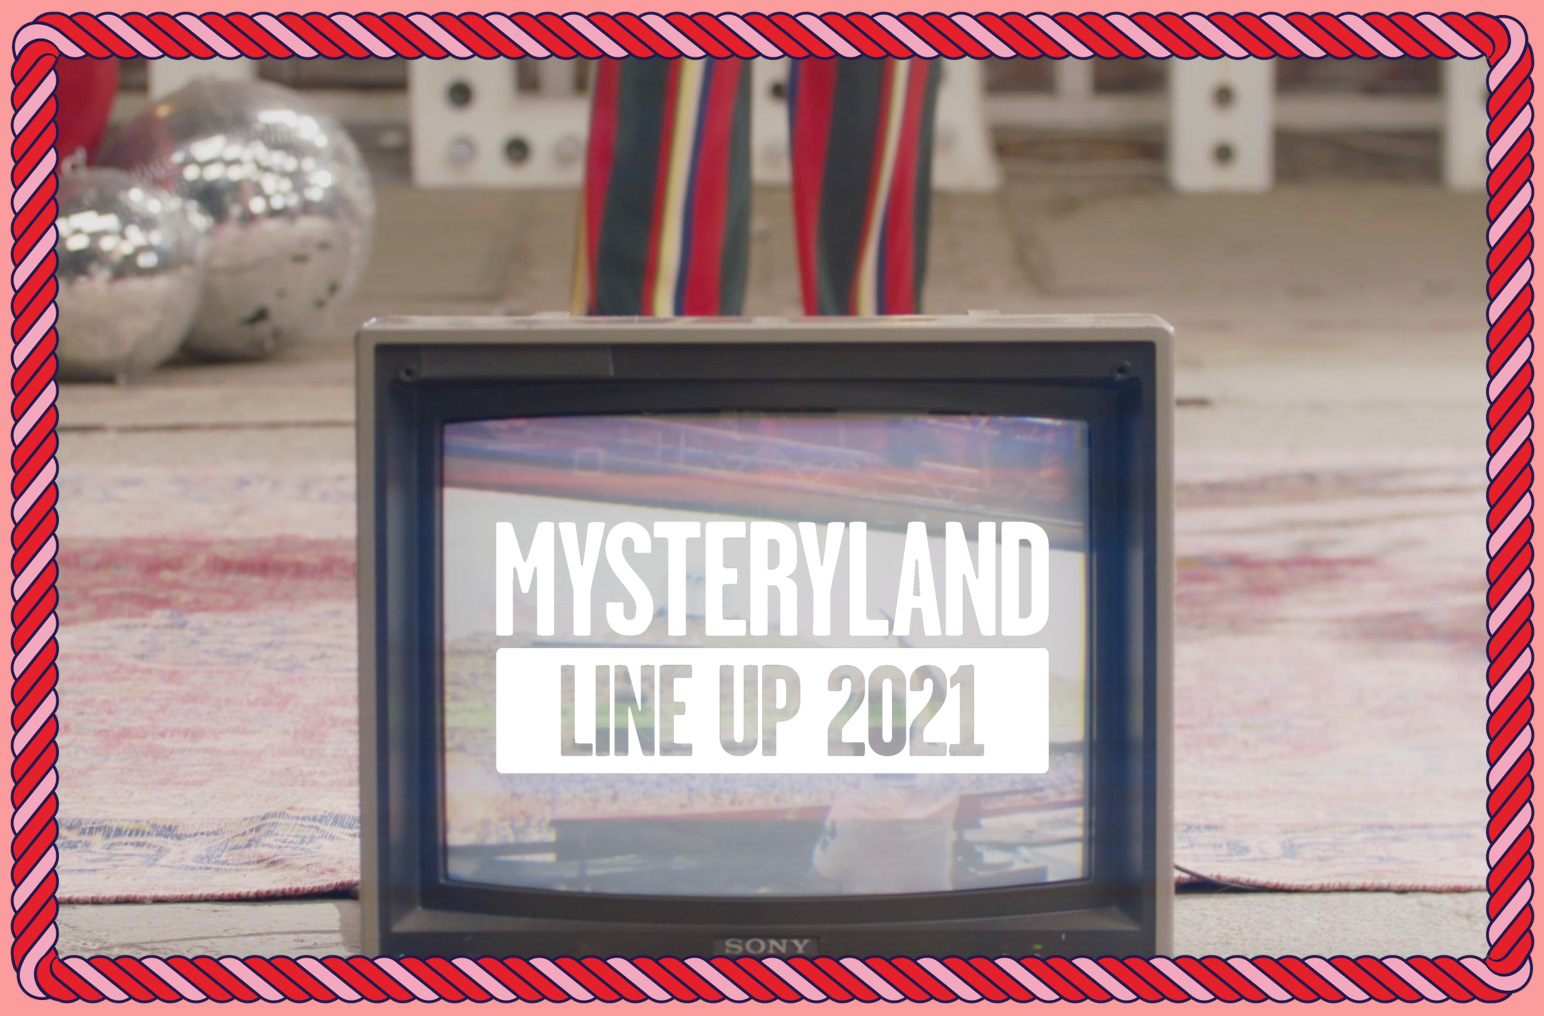 Mysteryland will be taking place this summer 4